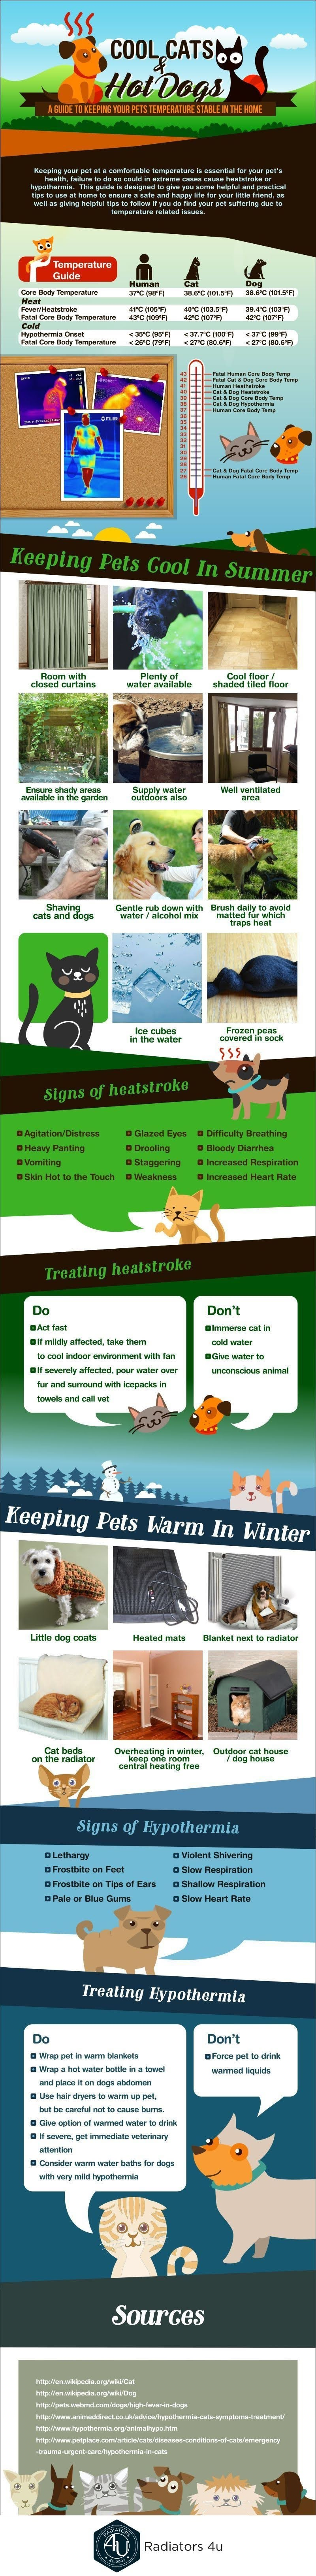 Cool Cats & Hot Dogs: a Guide to Keeping Your Pets Temperature Stable in the Home #infographic